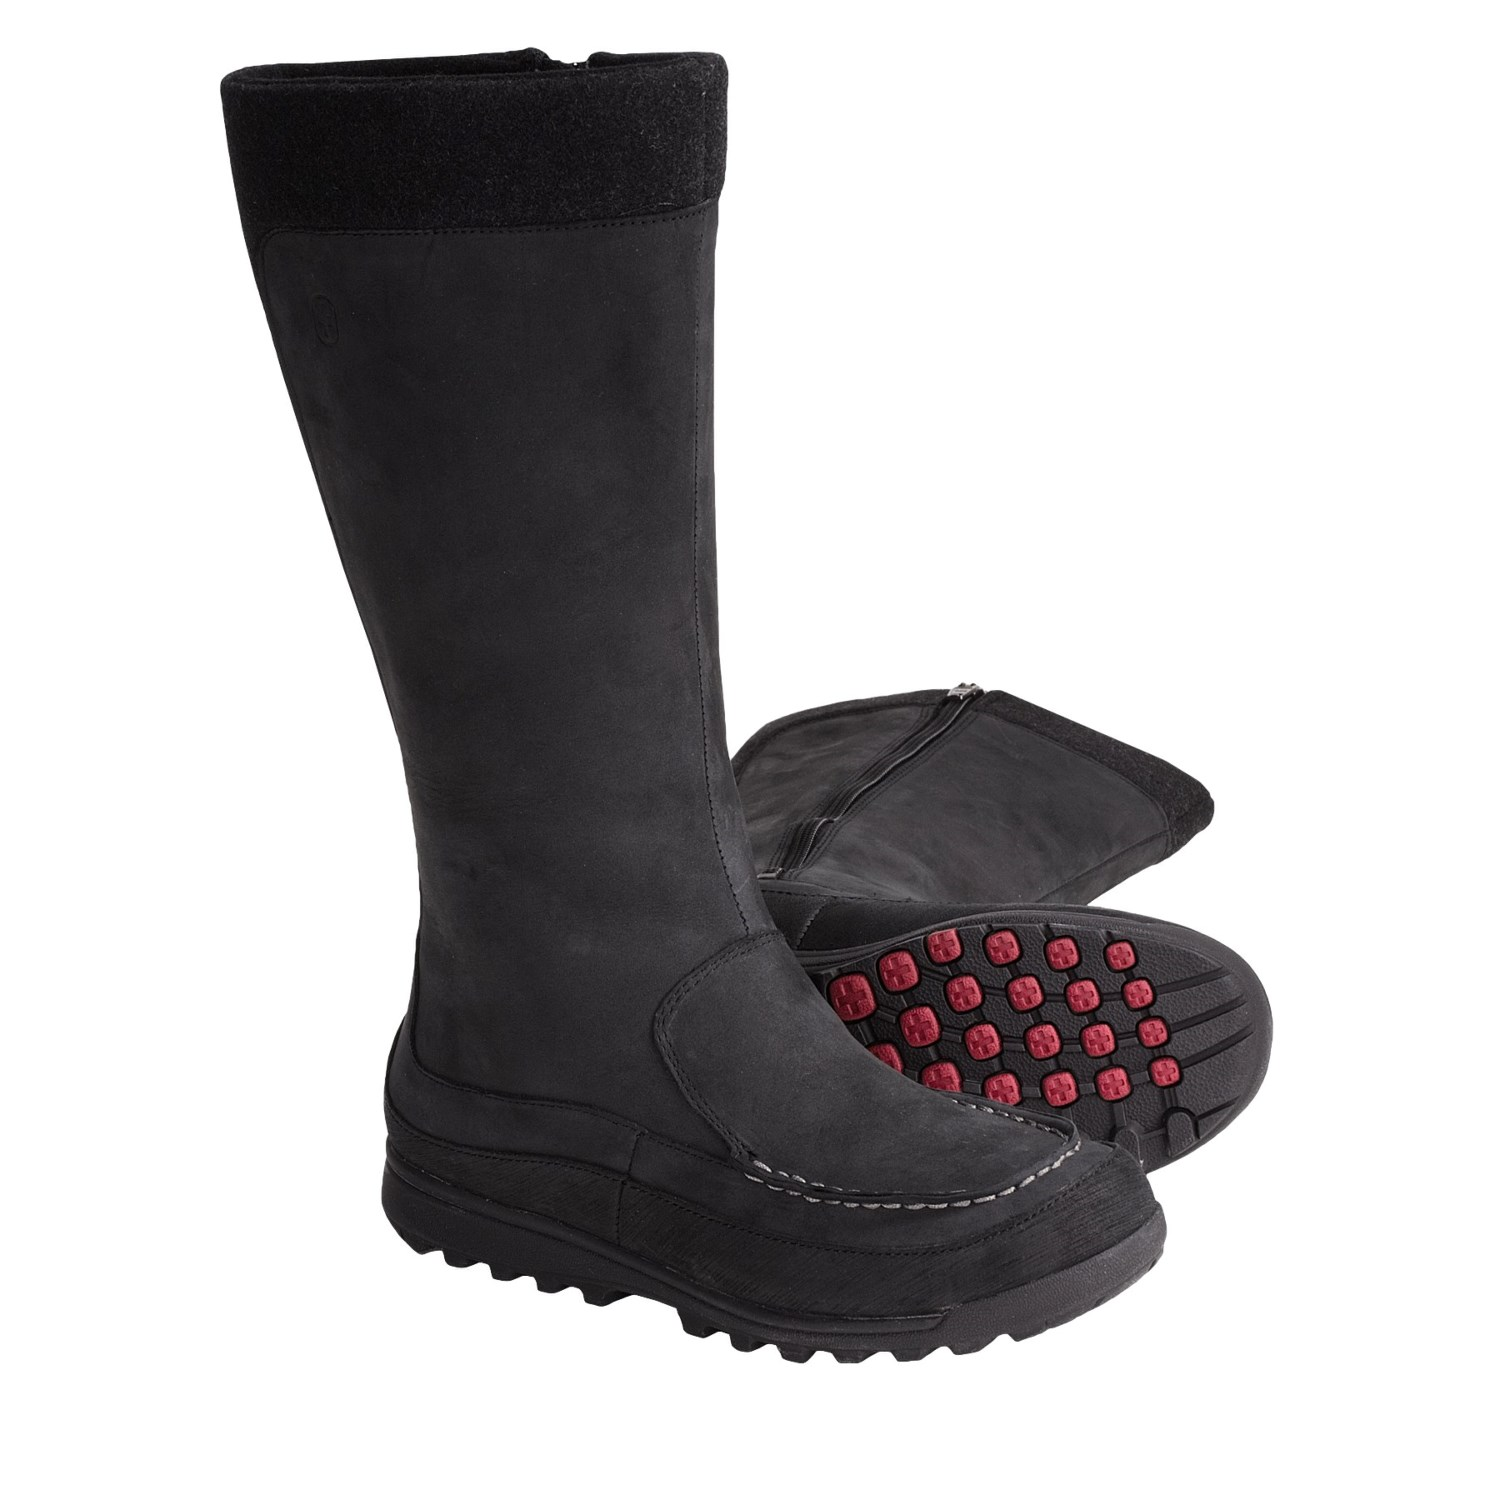 Womens Hillary Tall Snow Boots | Santa Barbara Institute for ...